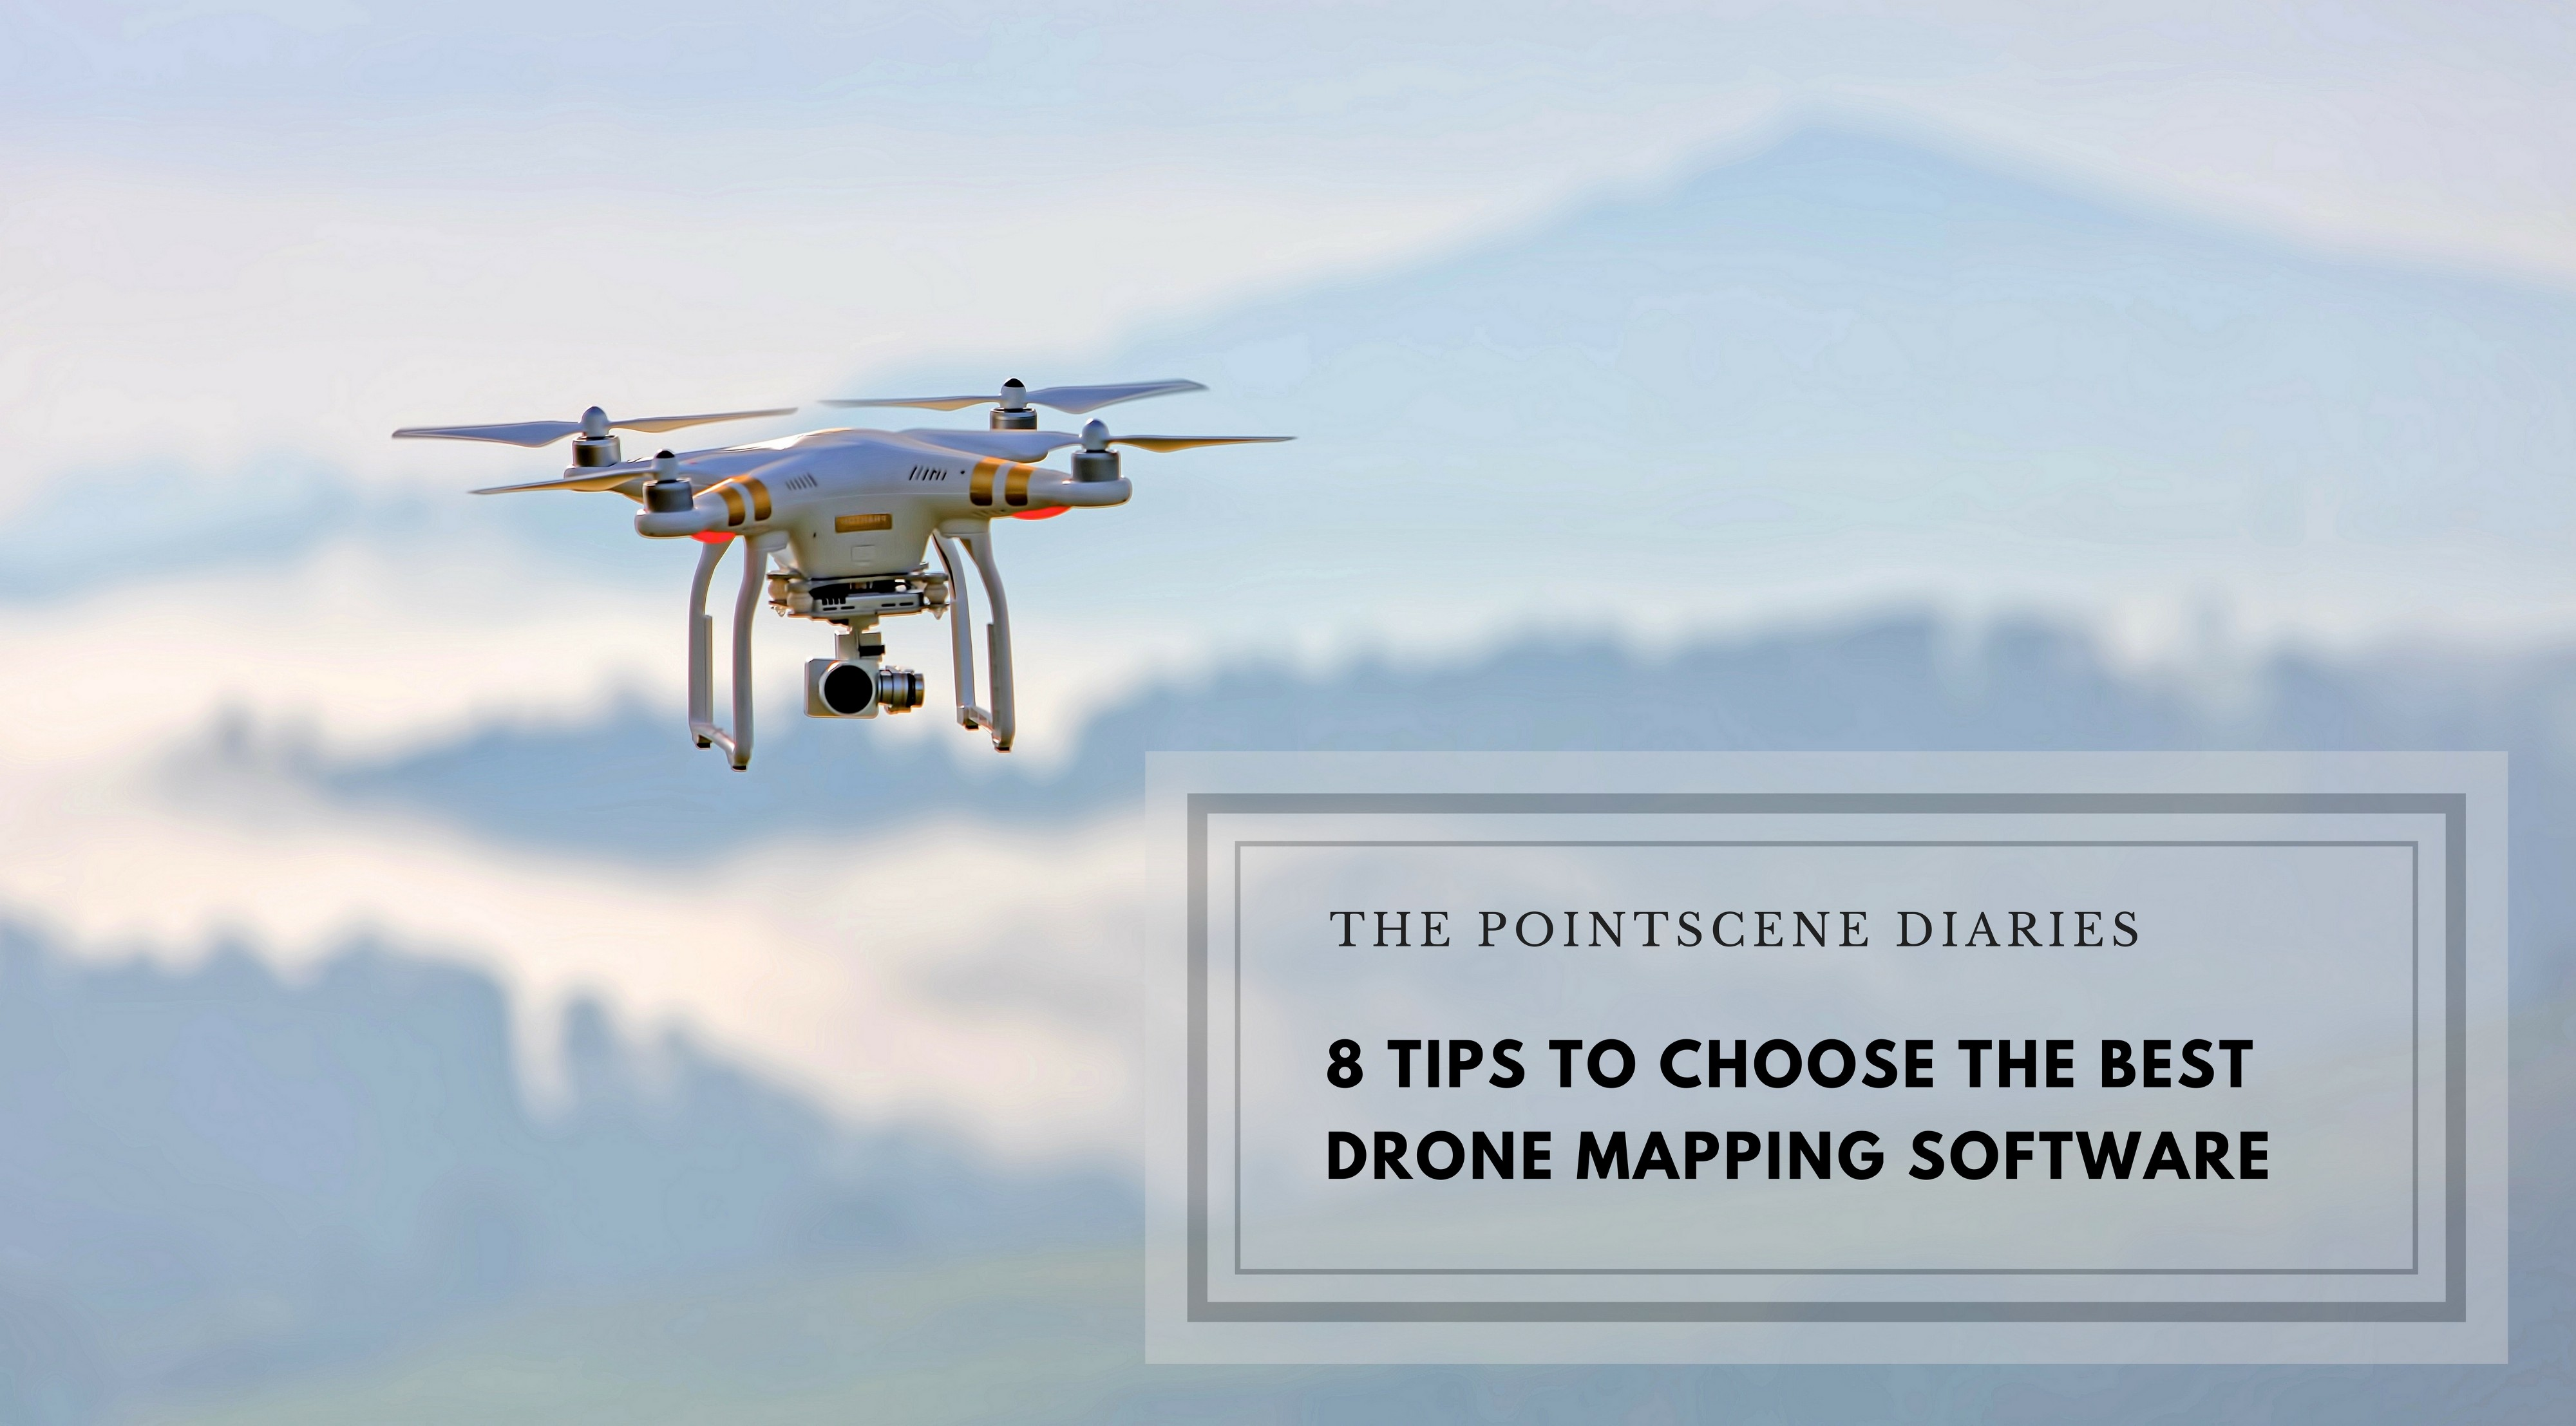 How to choose the best drone mapping software - The